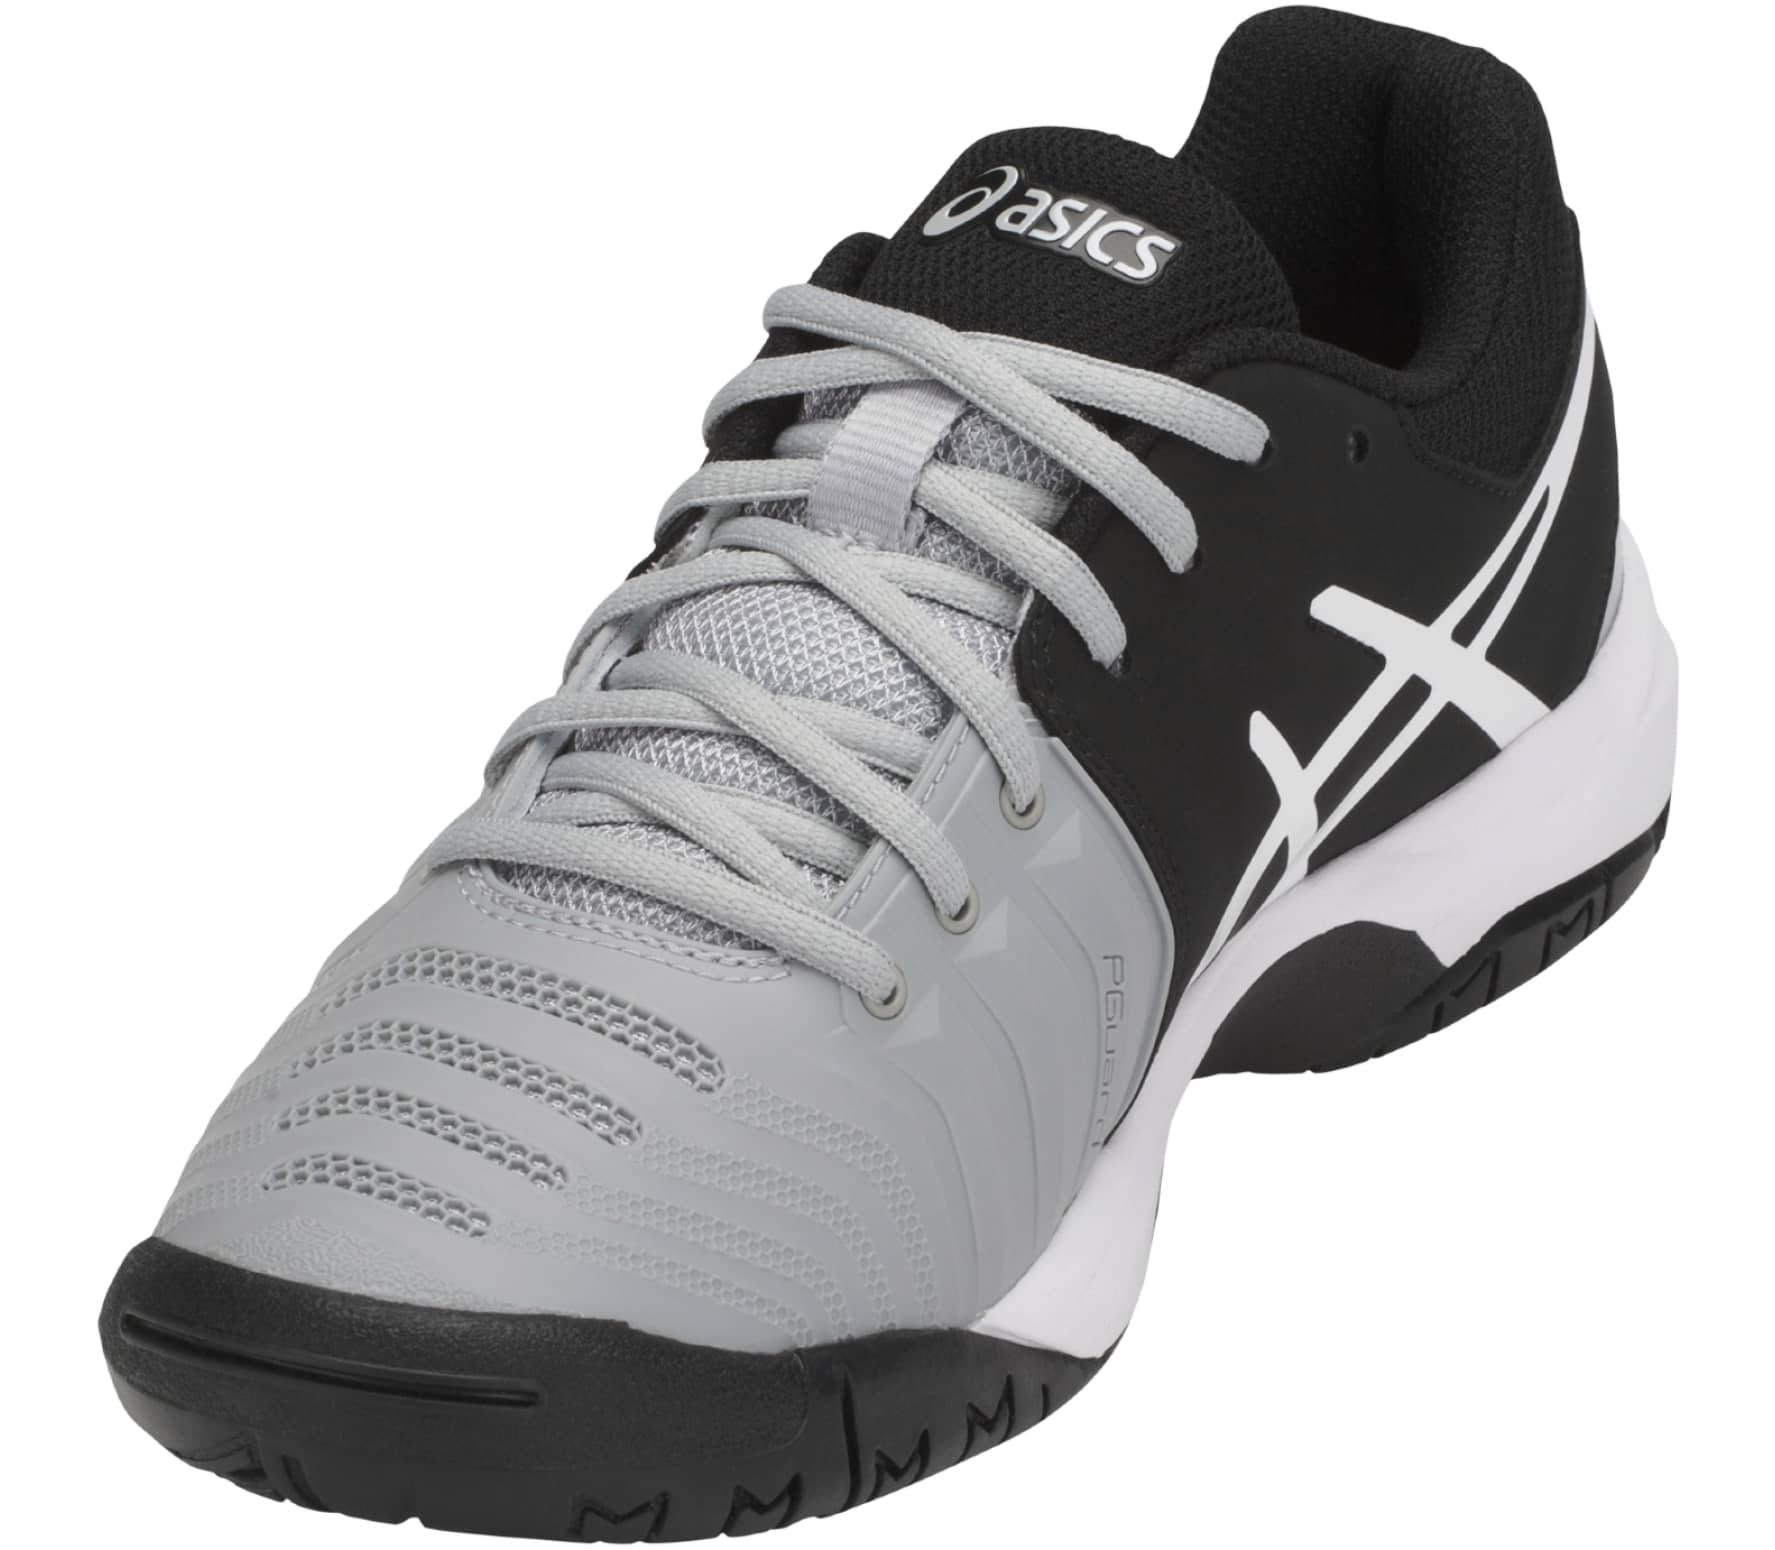 asics gel resolution 7 scarpe da tennis